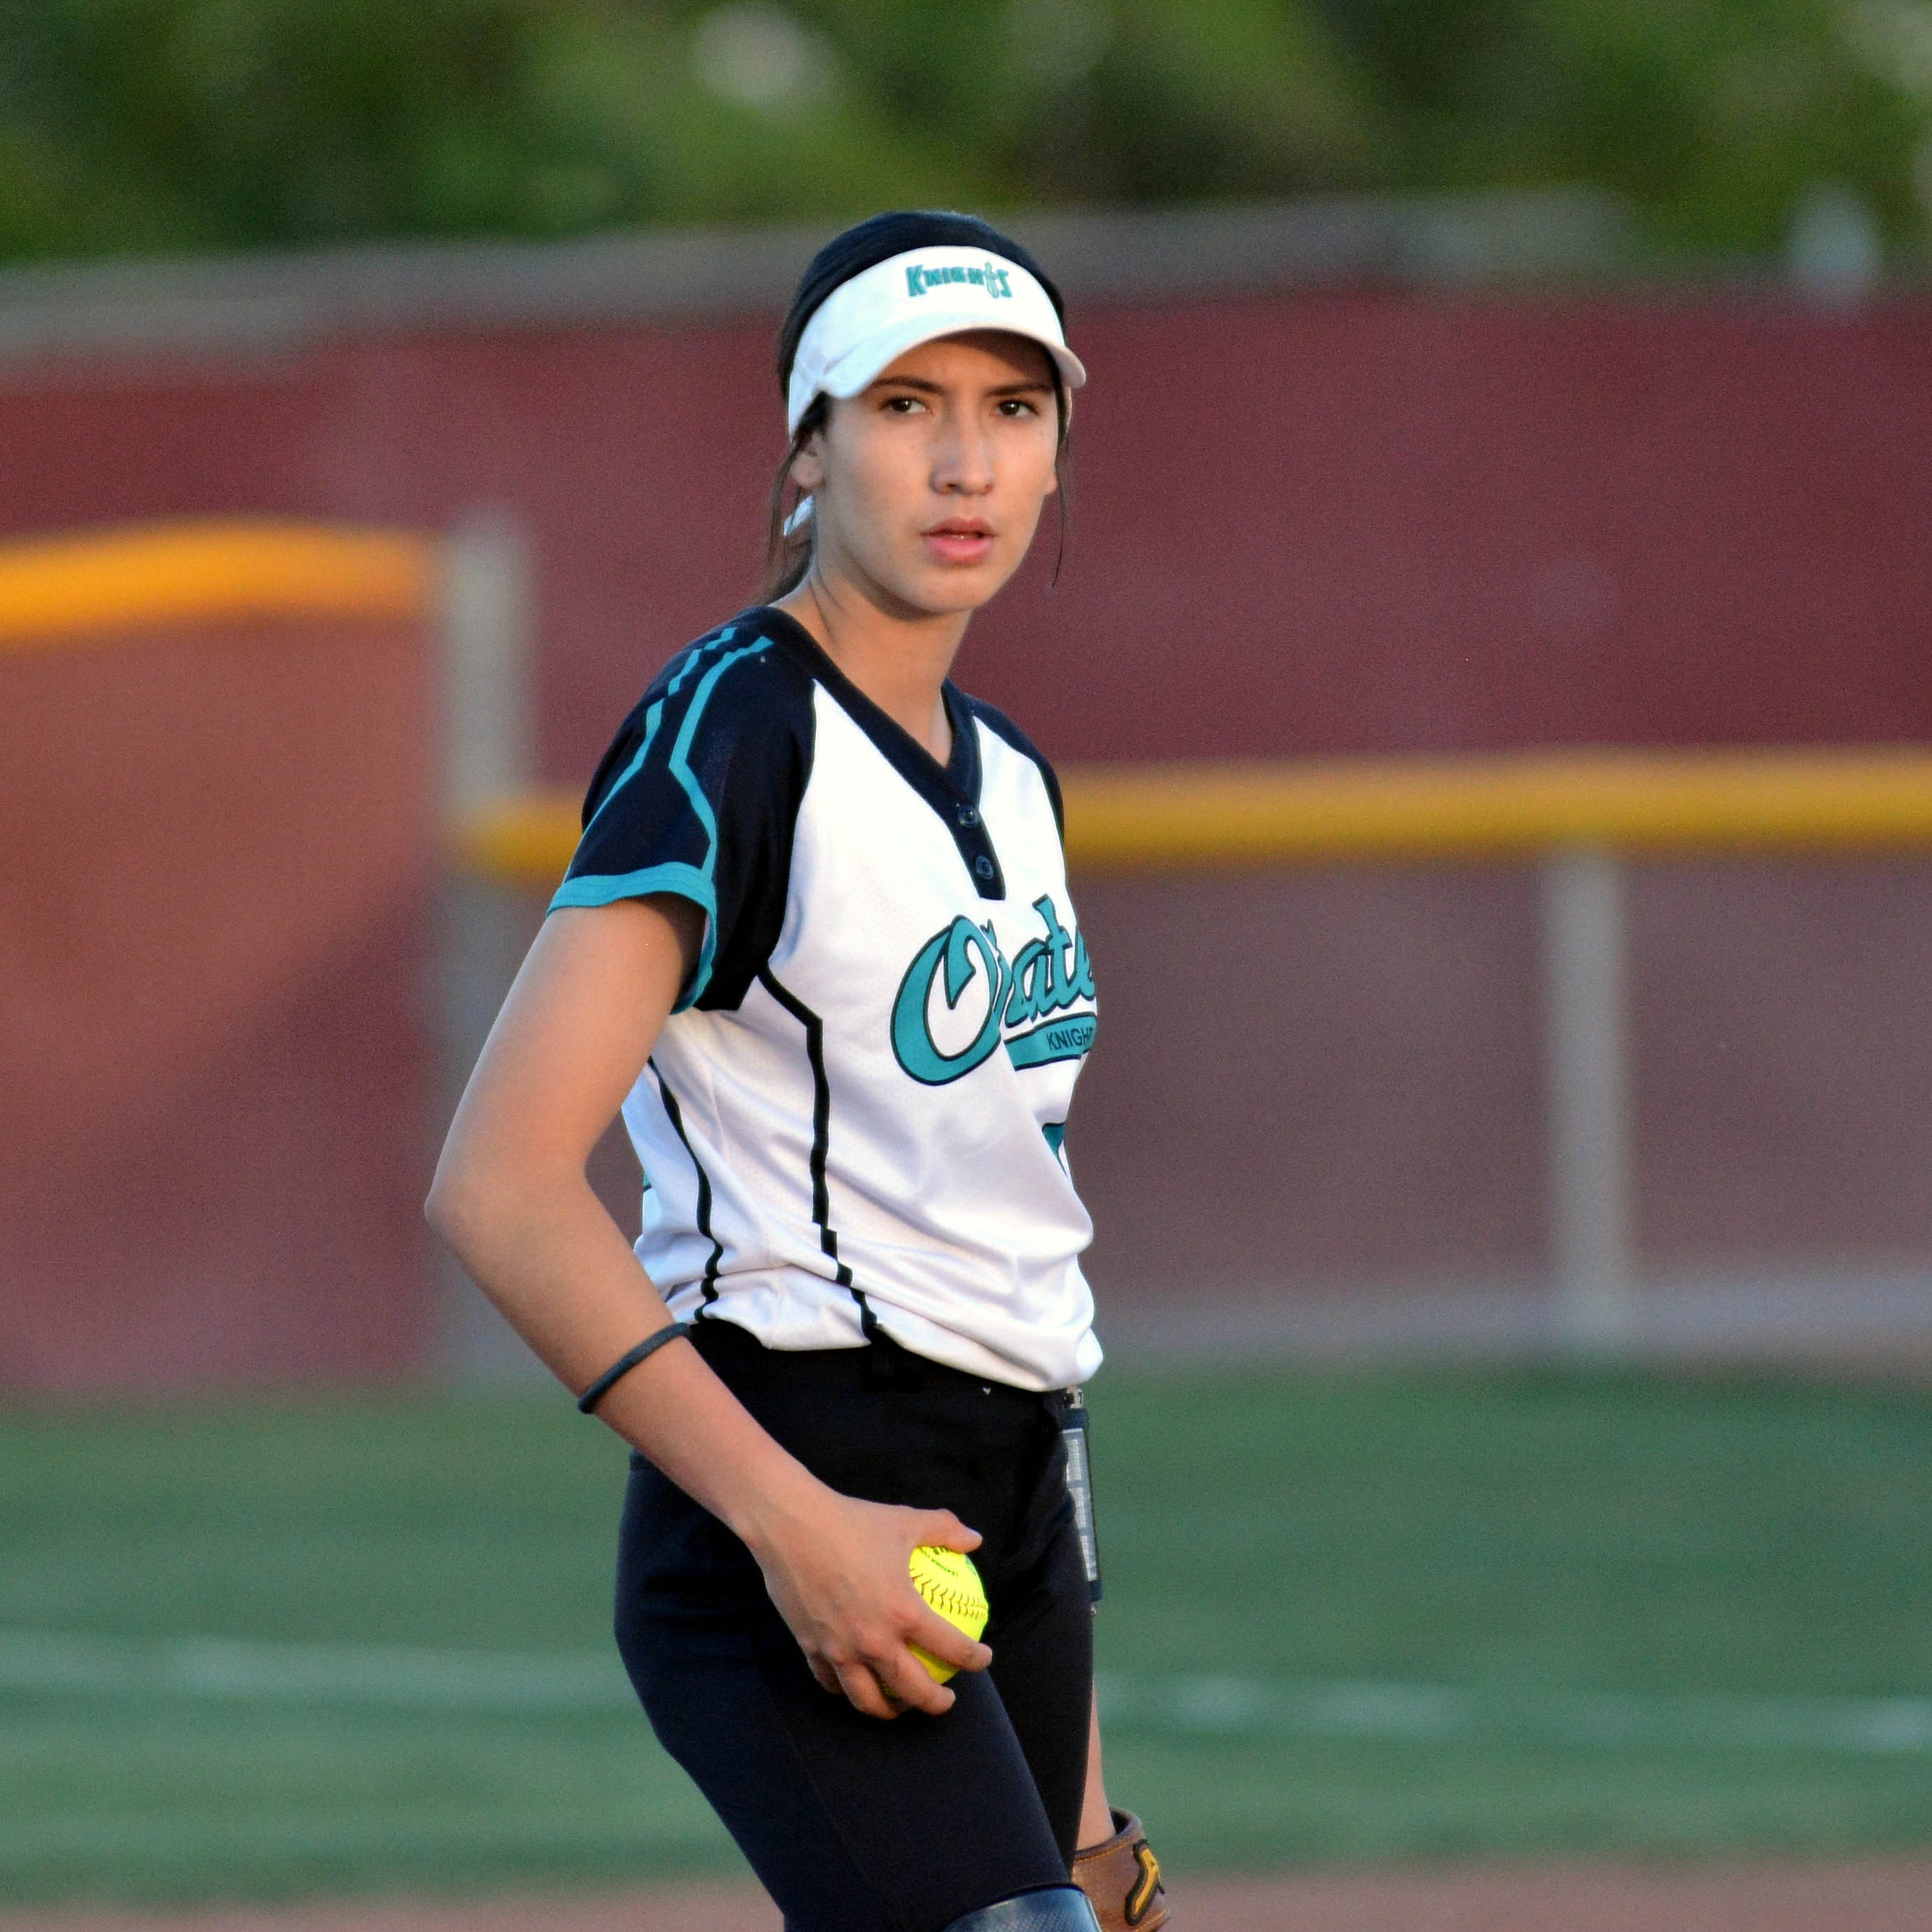 Oñate's Jaileen Mancha works way back from knee injury to return to pitcher's circle